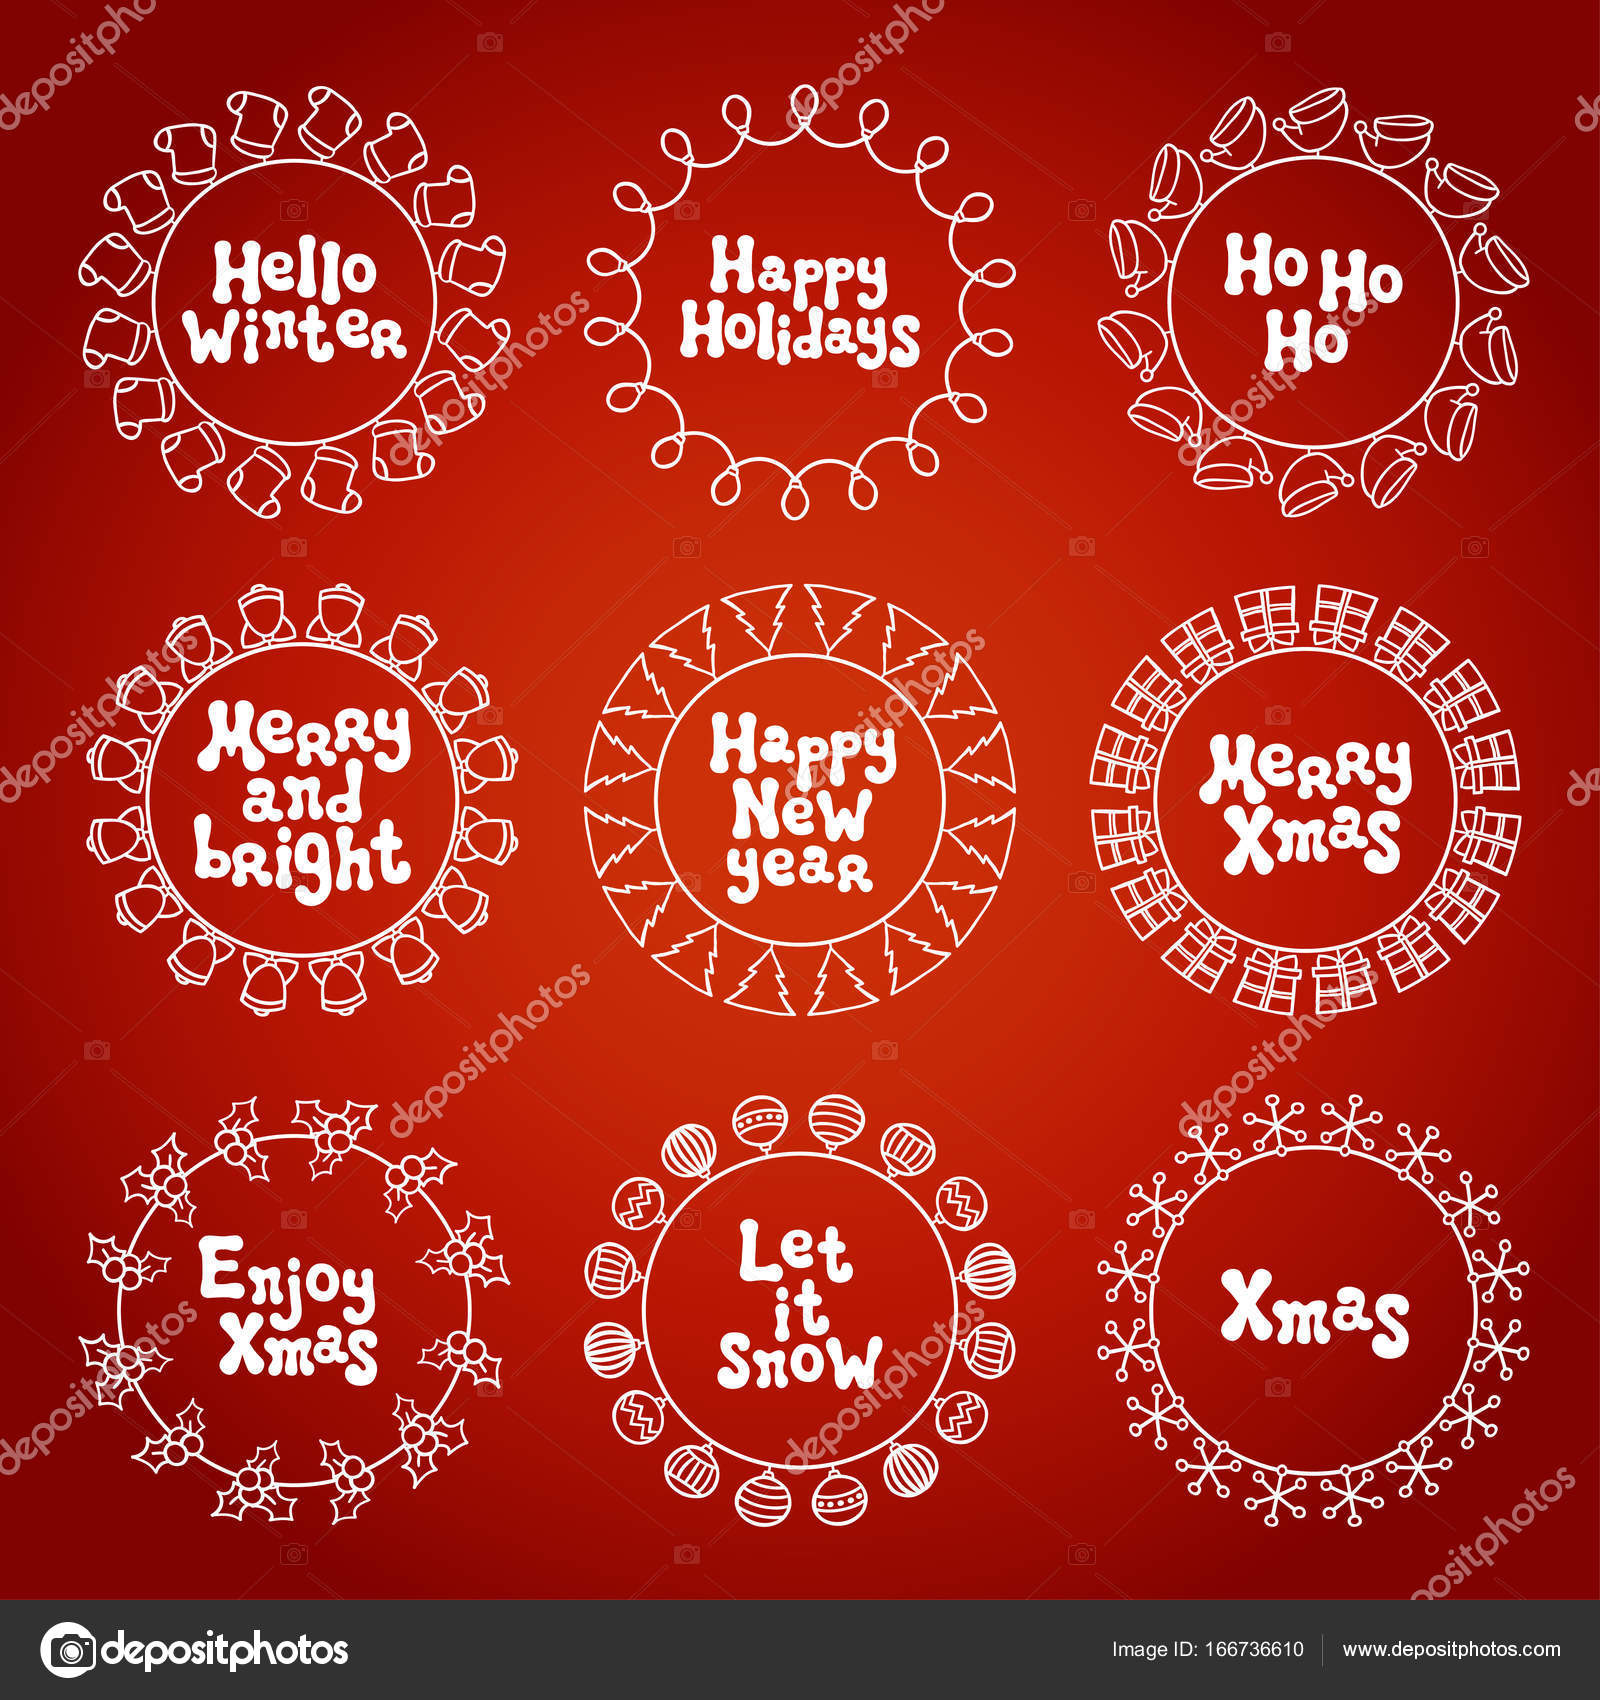 merry christmas new year wishes labels stickers and badges hand drawn framework frame calligraphy phrase handwritten lettering xmas phrase set